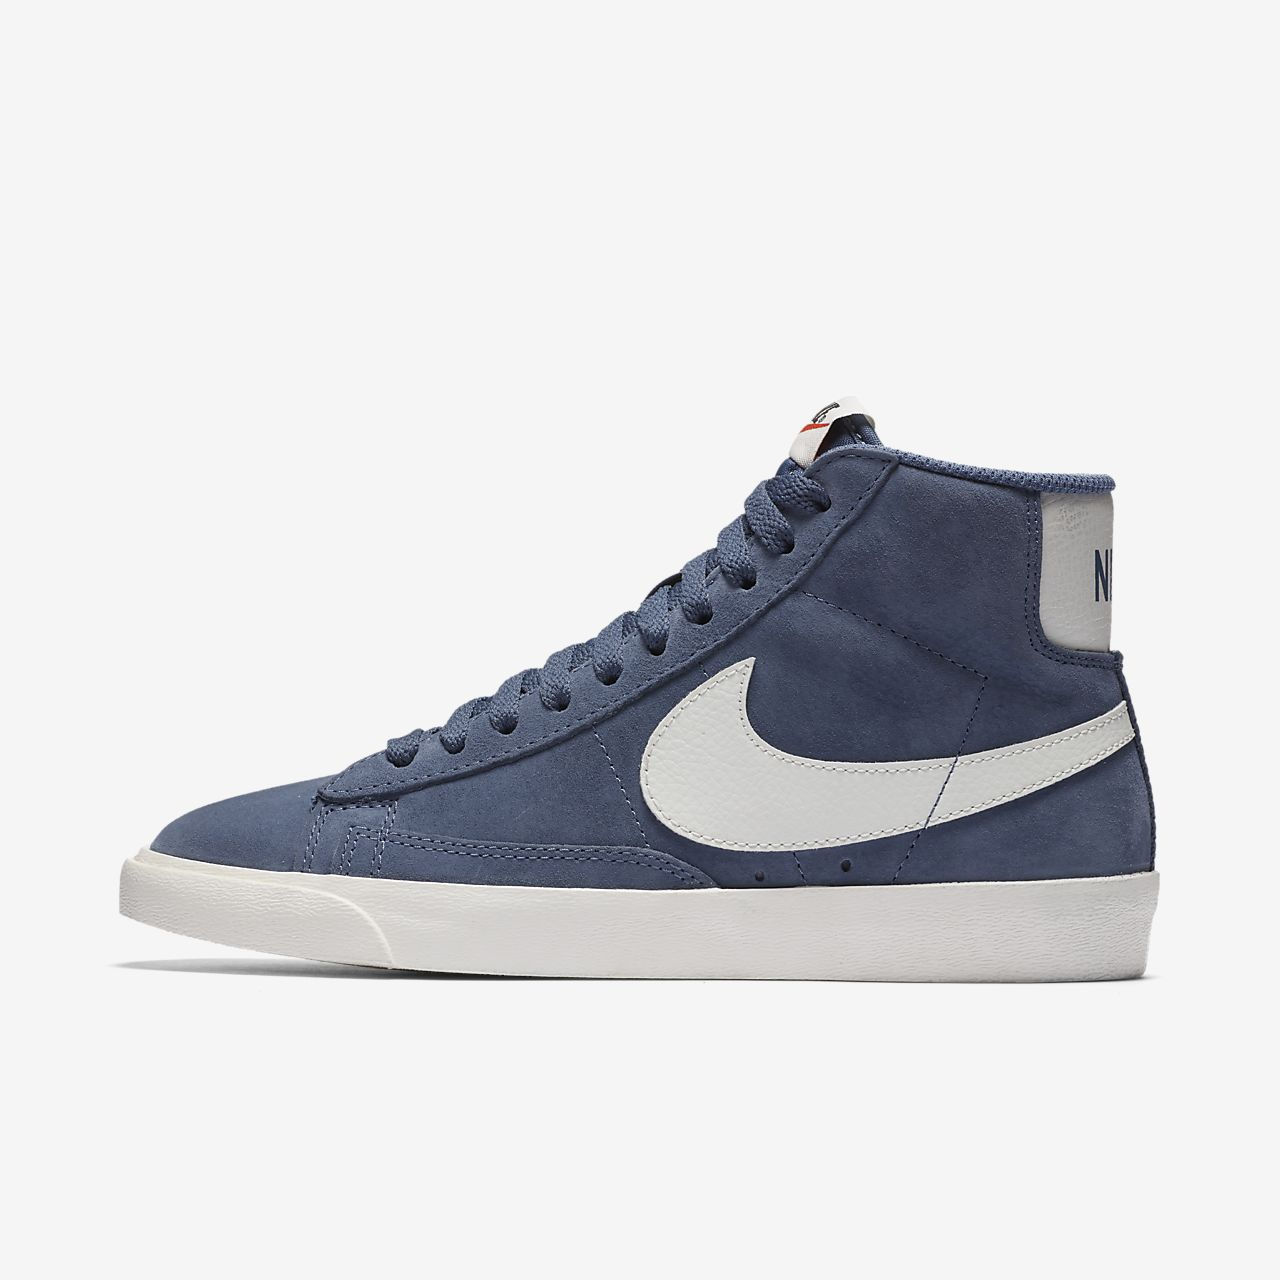 Nike Blazer Classic High Women's Shoes